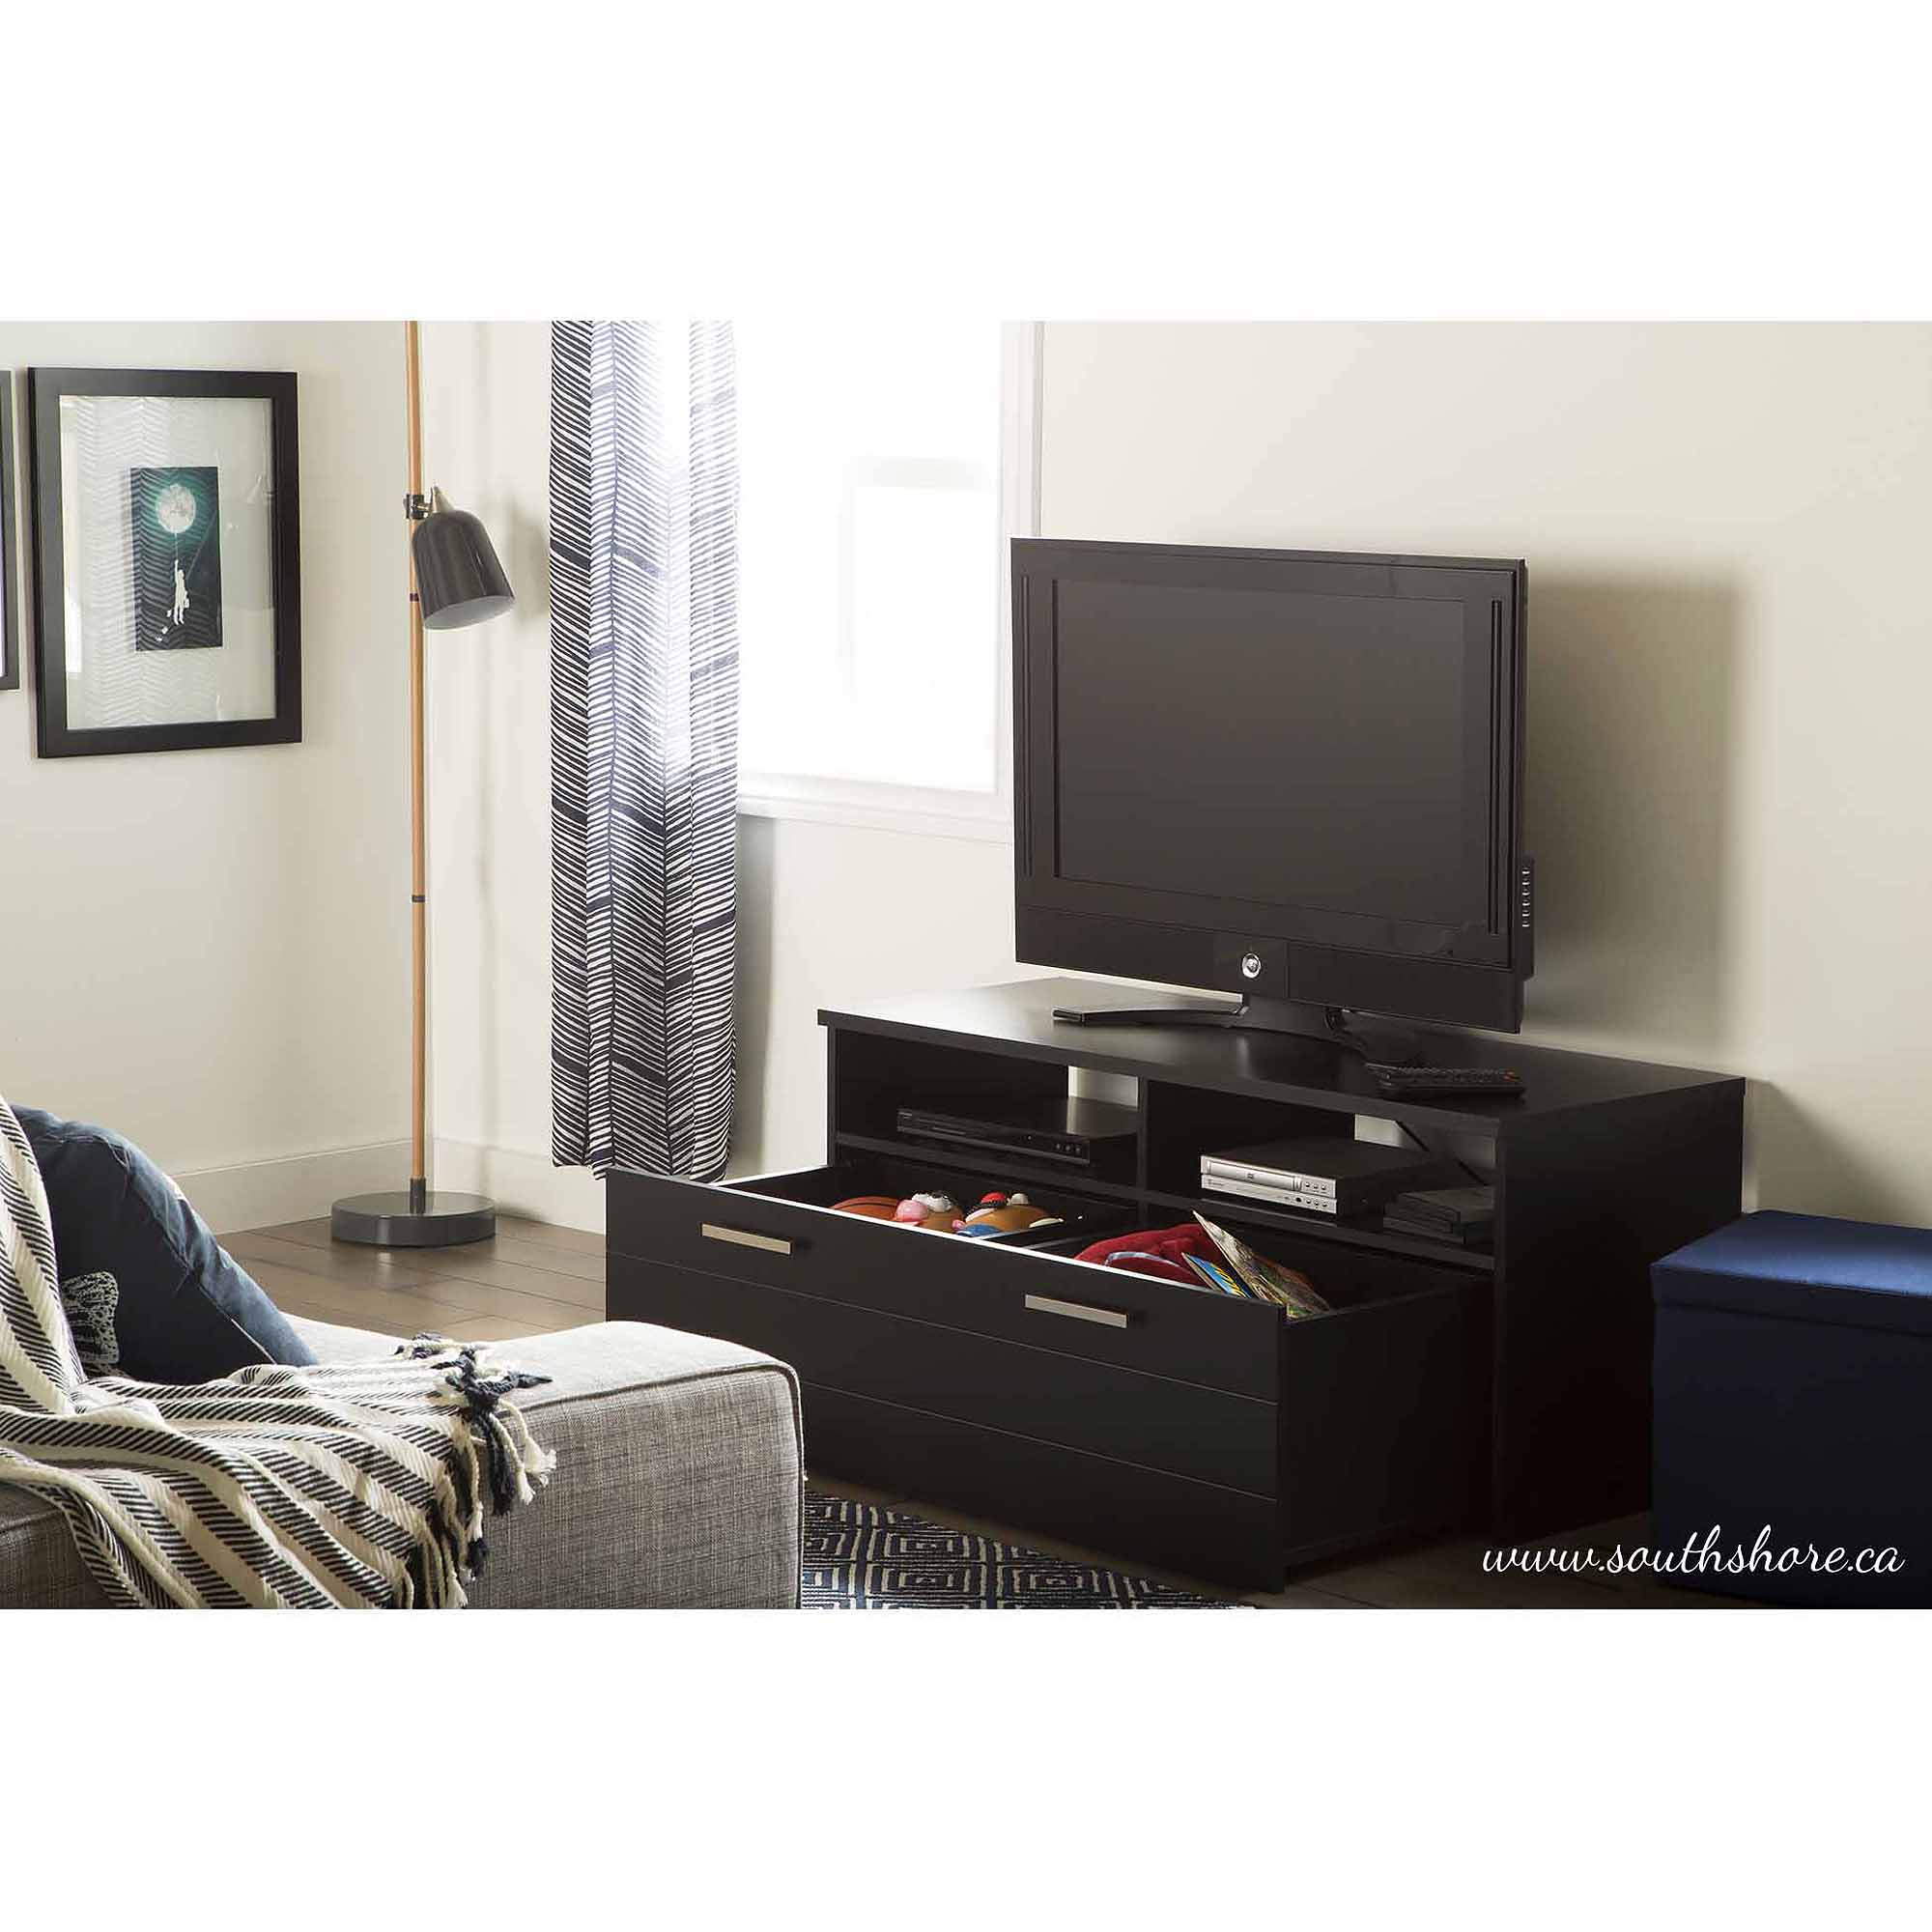 South Shore Jambory Storage and Home Entertainment Furniture Collection